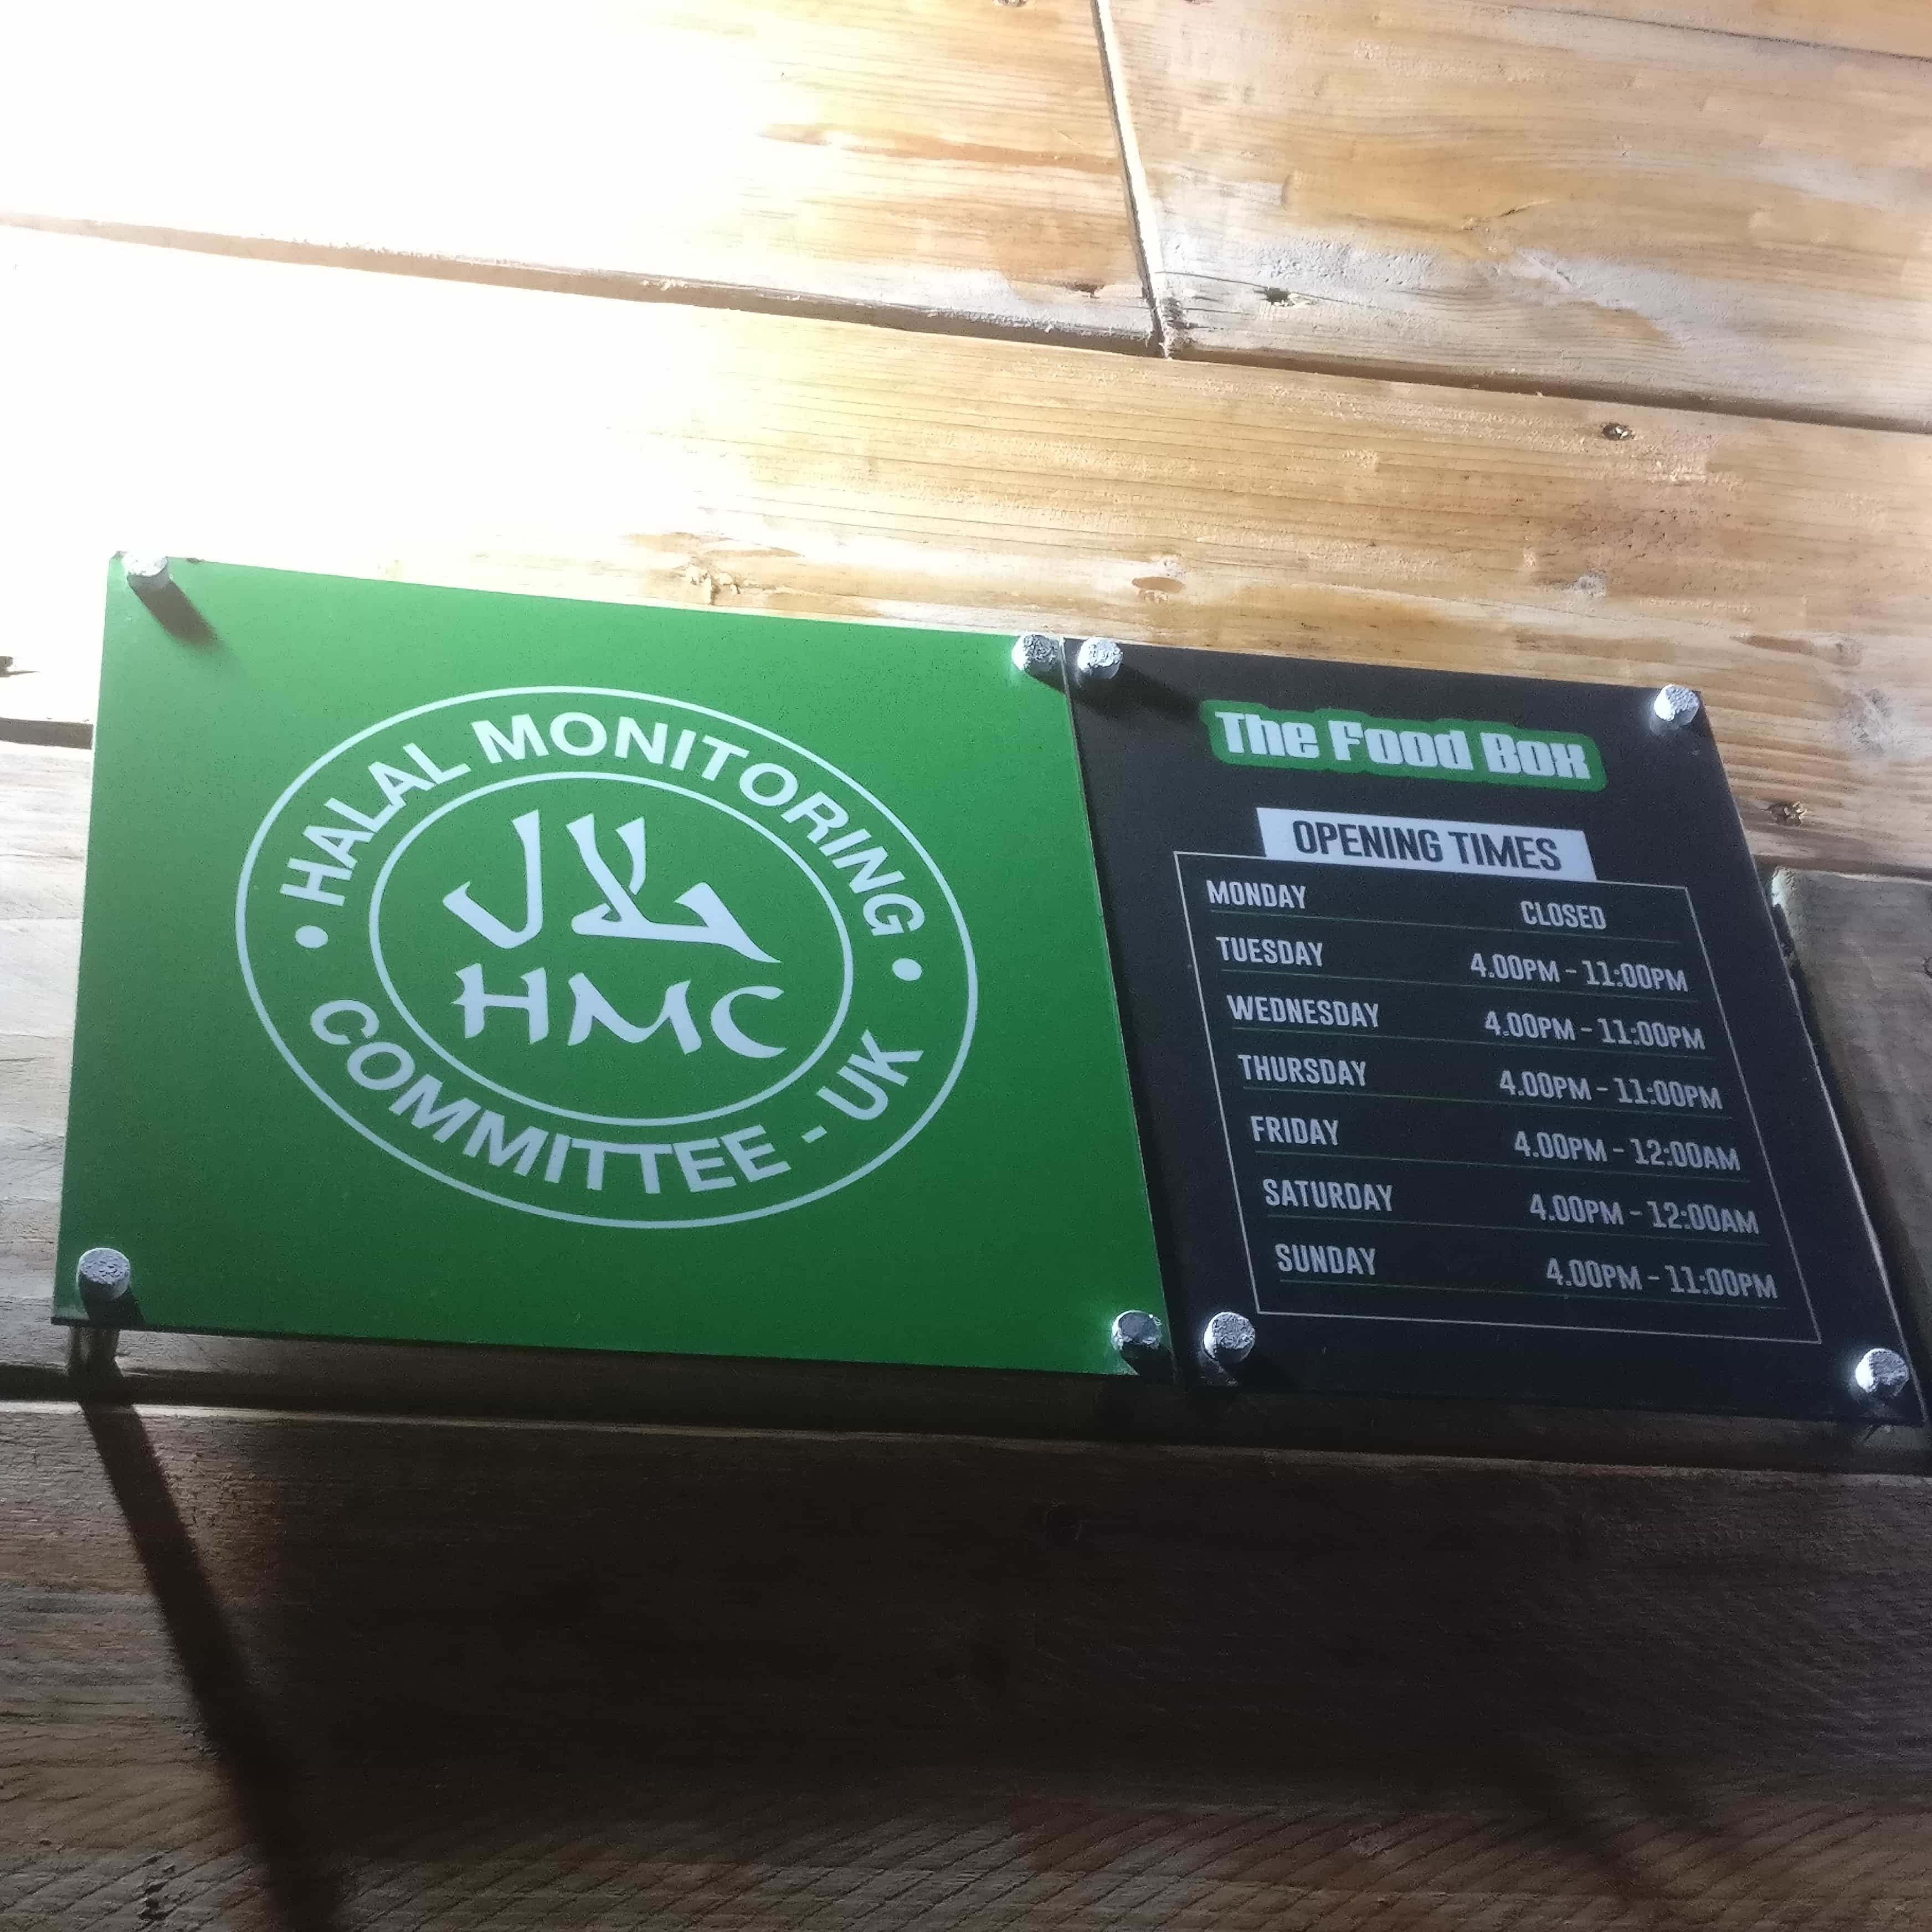 The Food Box Manchester Manchester Review Hmc